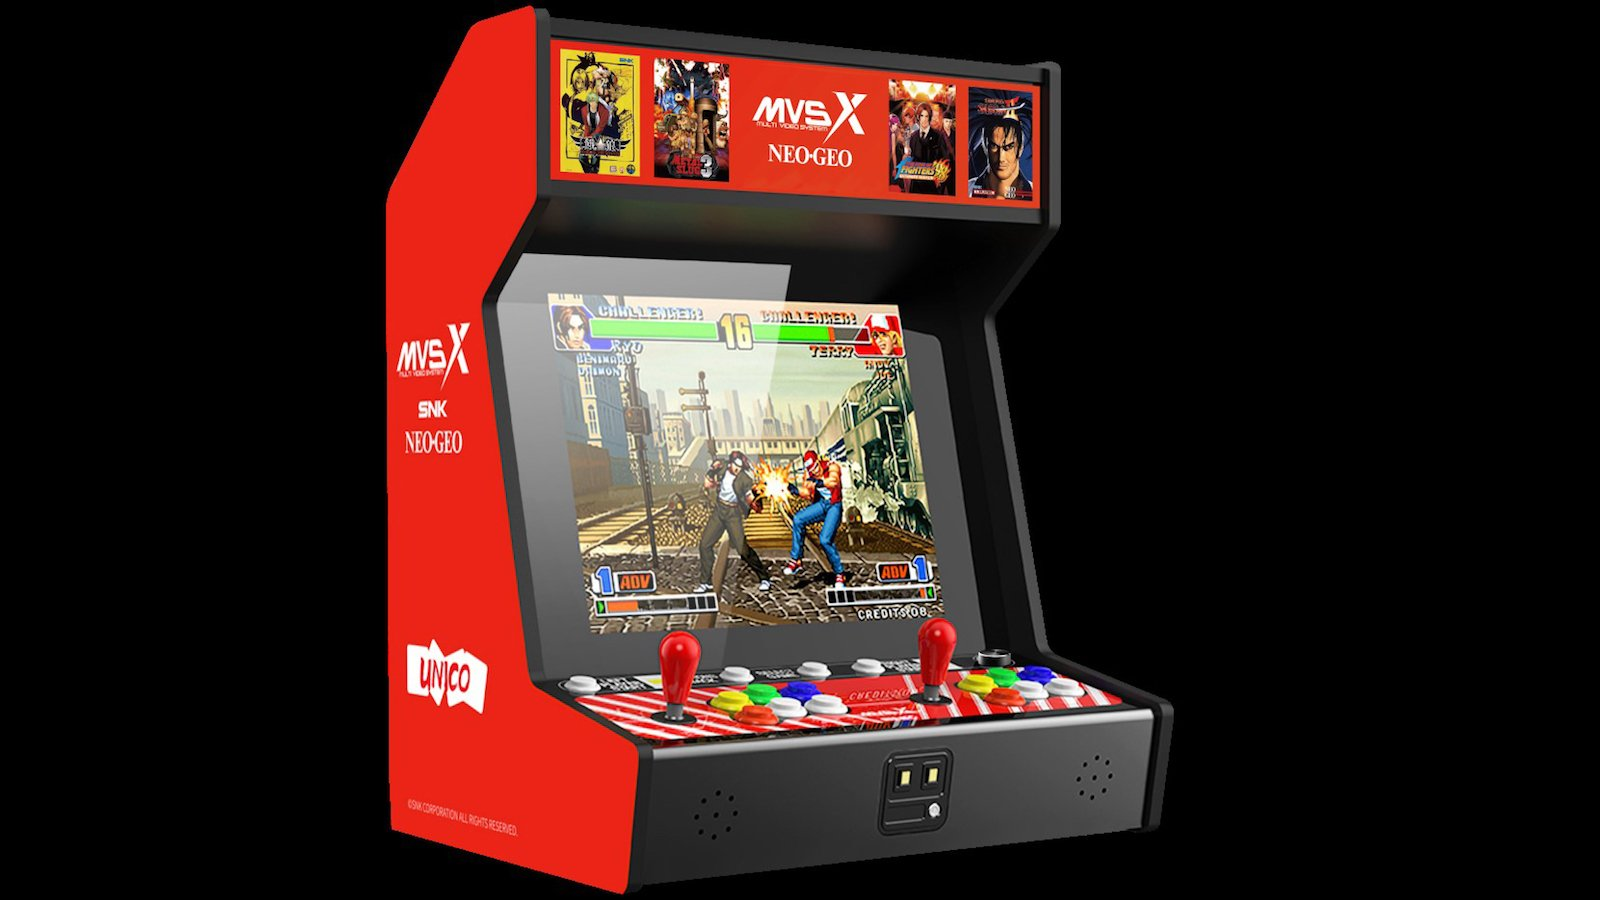 MVSX Home Arcade multivideo system comes with 50 games